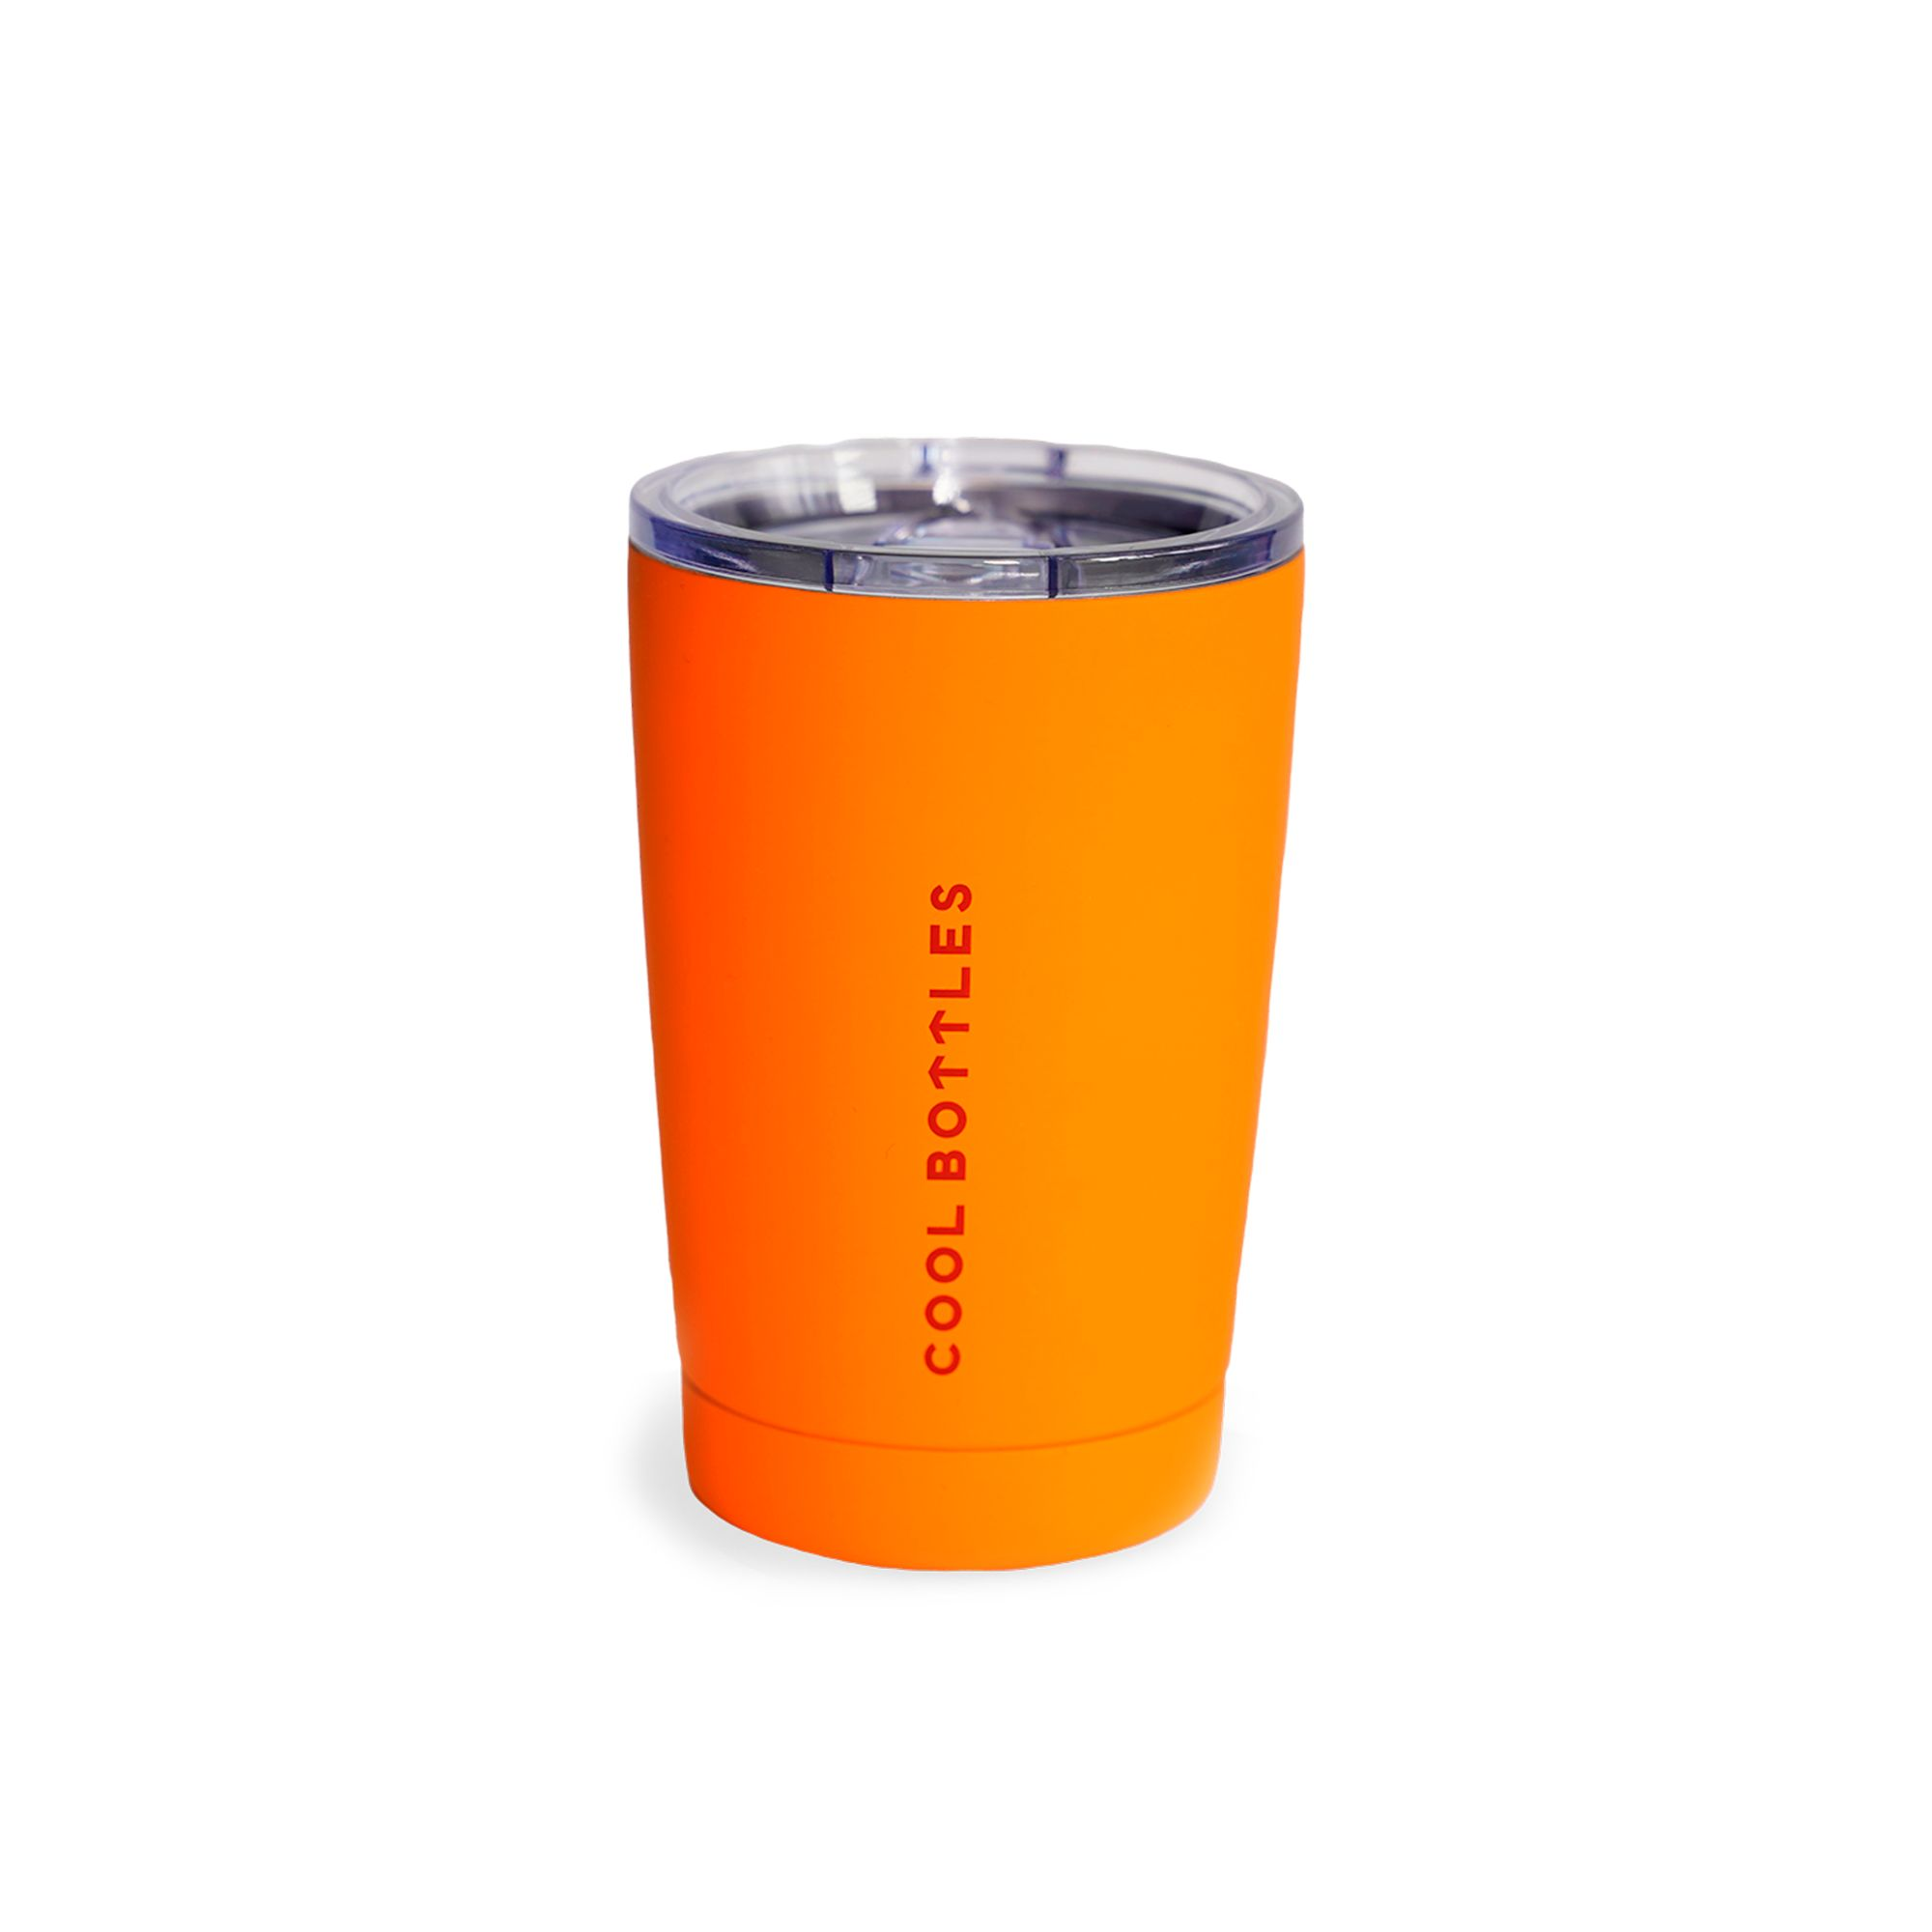 Vaso de acero inoxidable Vivid Orange 330